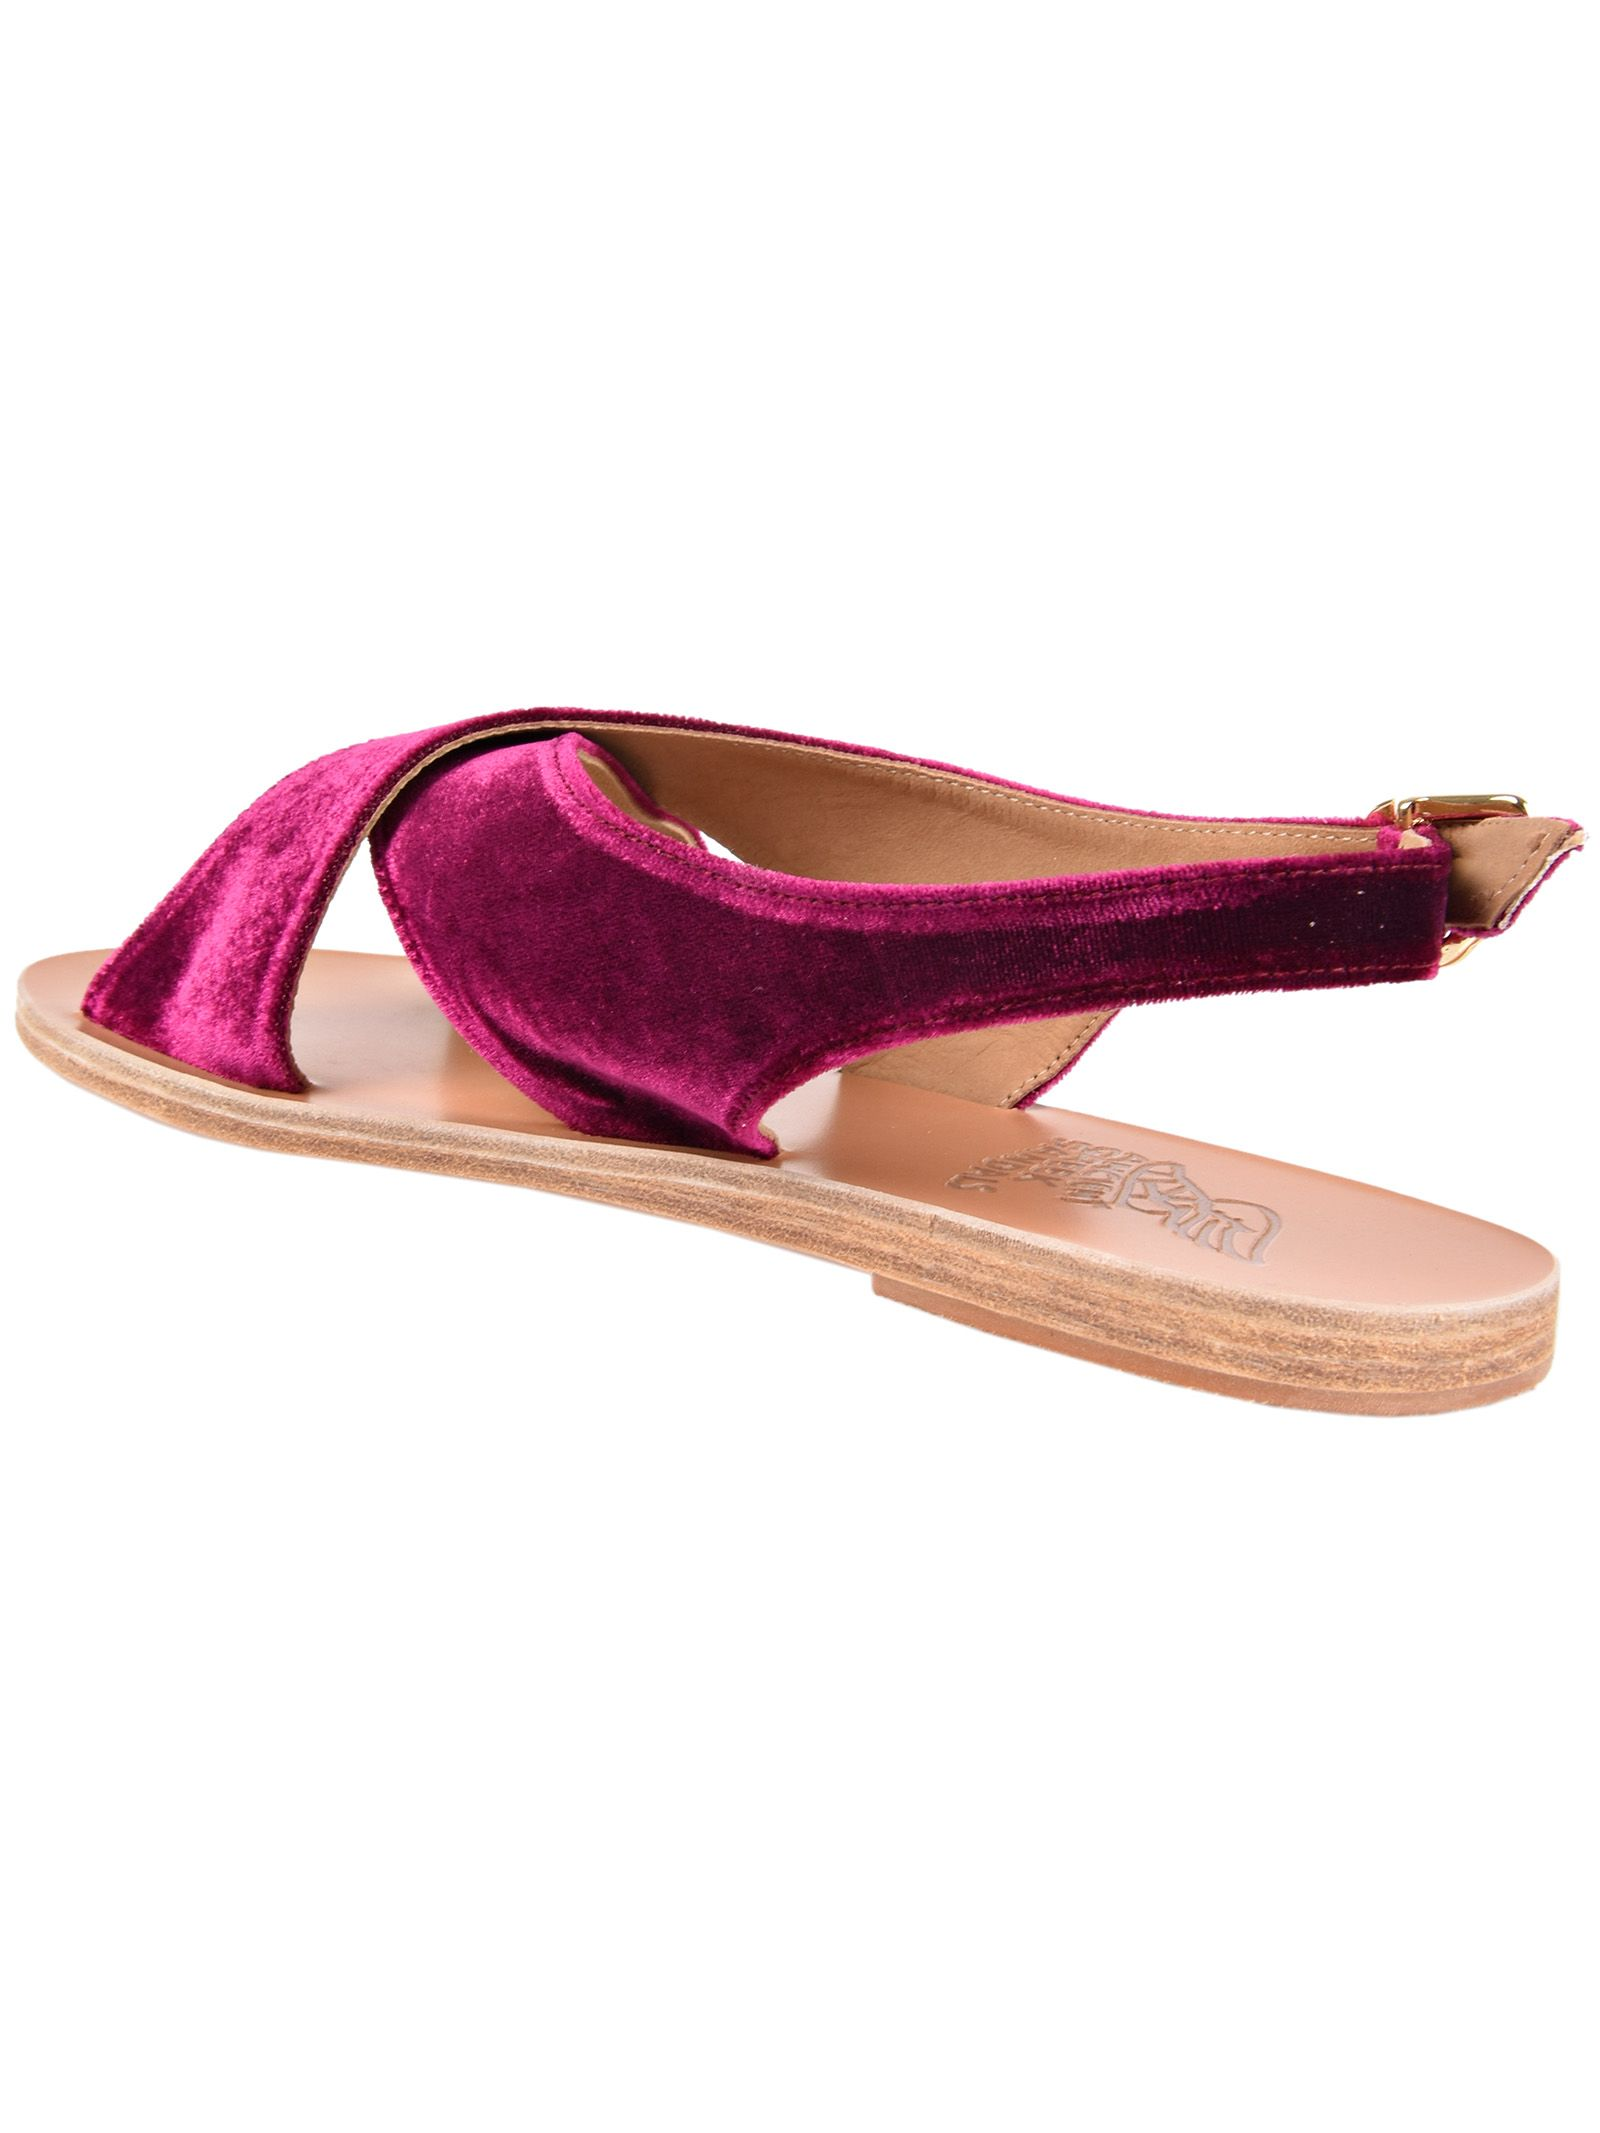 Maria sandals - Pink & Purple Ancient Greek Sandals F2VVOfWwn